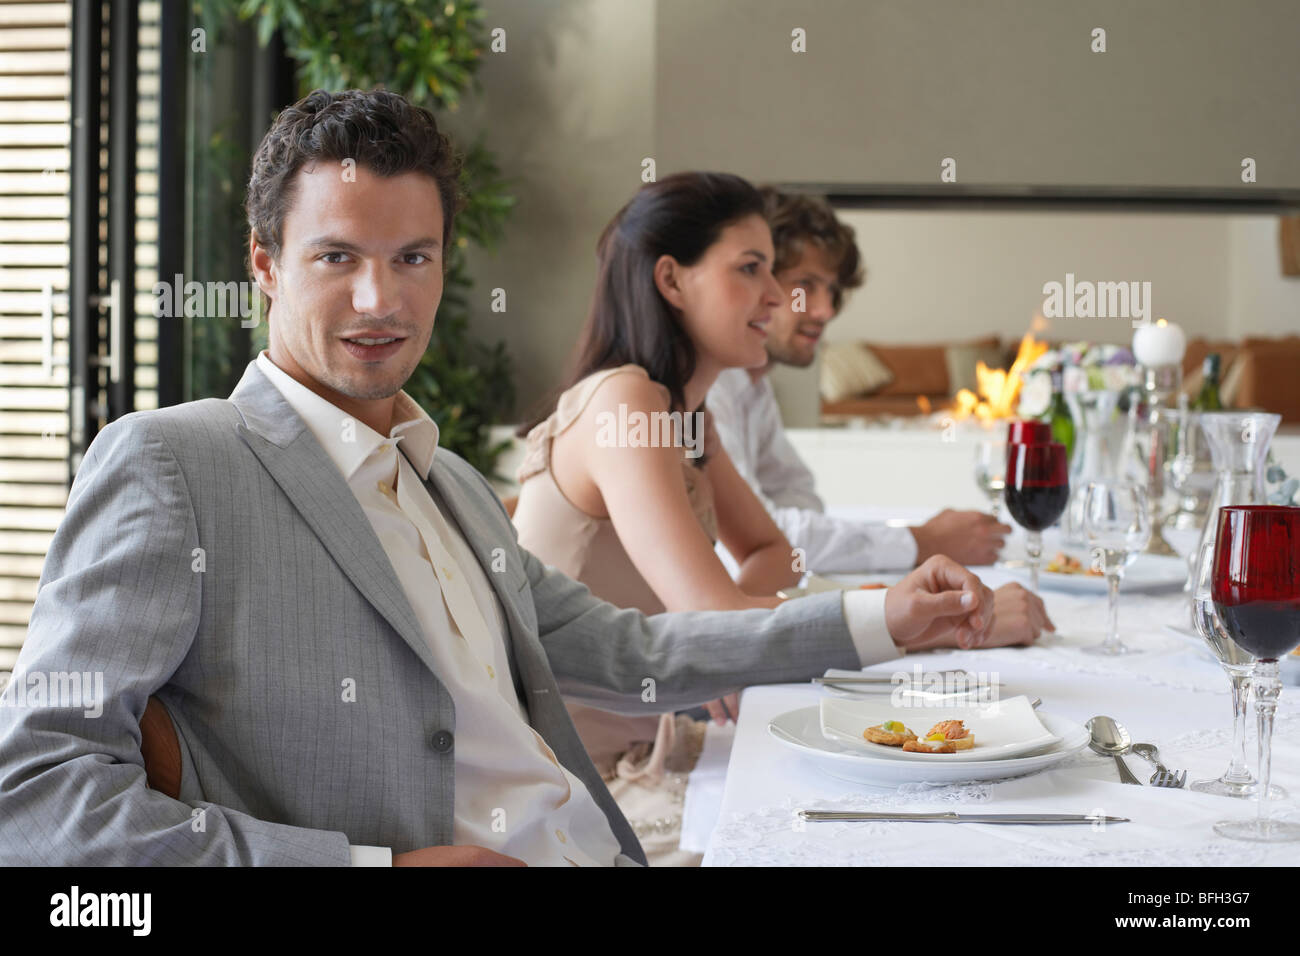 Young, stylishly dressed man sitting at table of formal dinner party, smiling Stock Photo